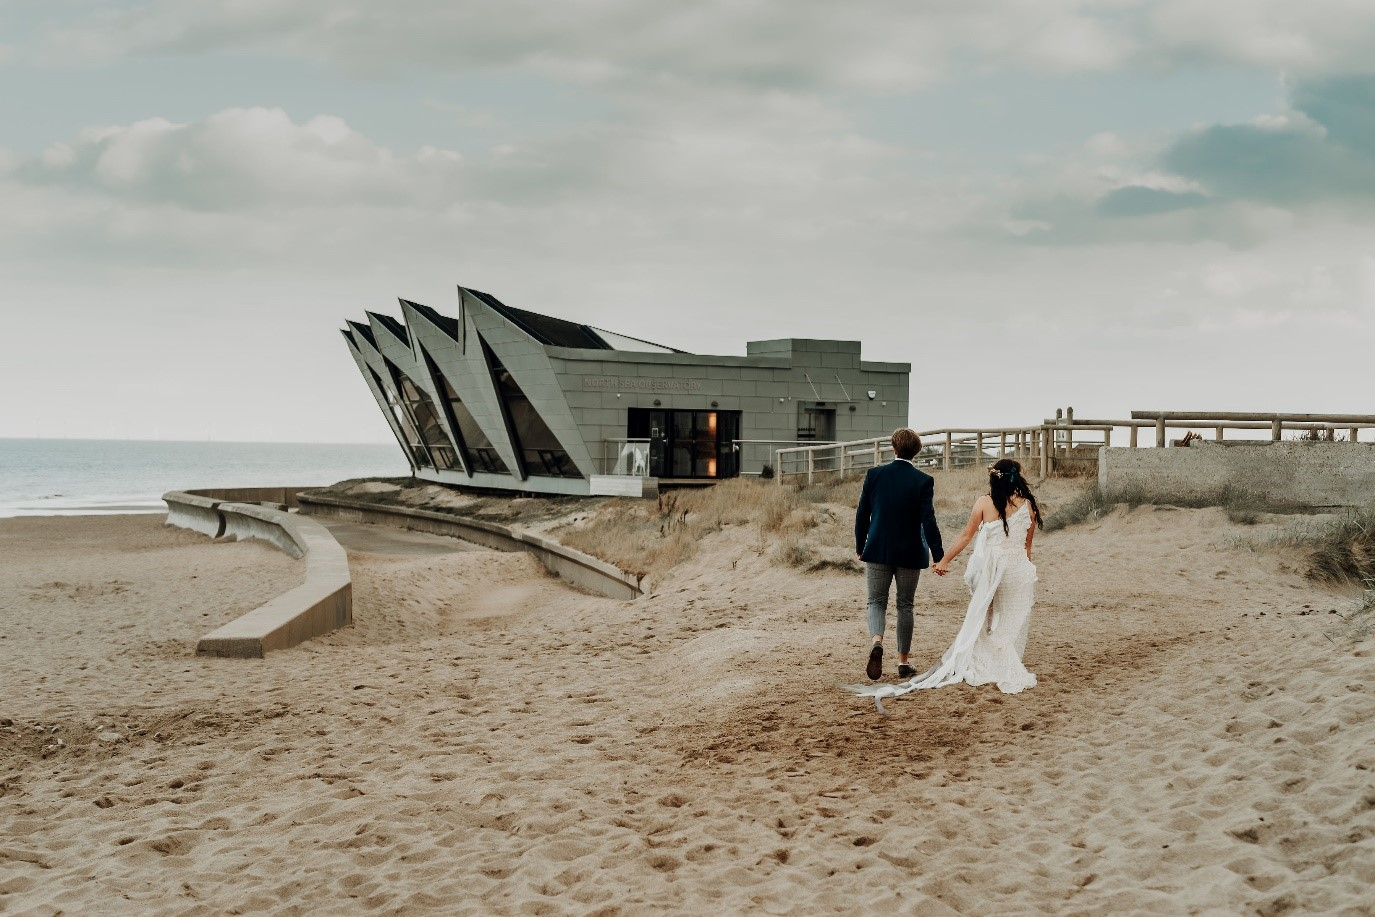 beach elopement - beach wedding - eco friendly wedding -tempest themed wedding - bride and groom on beach